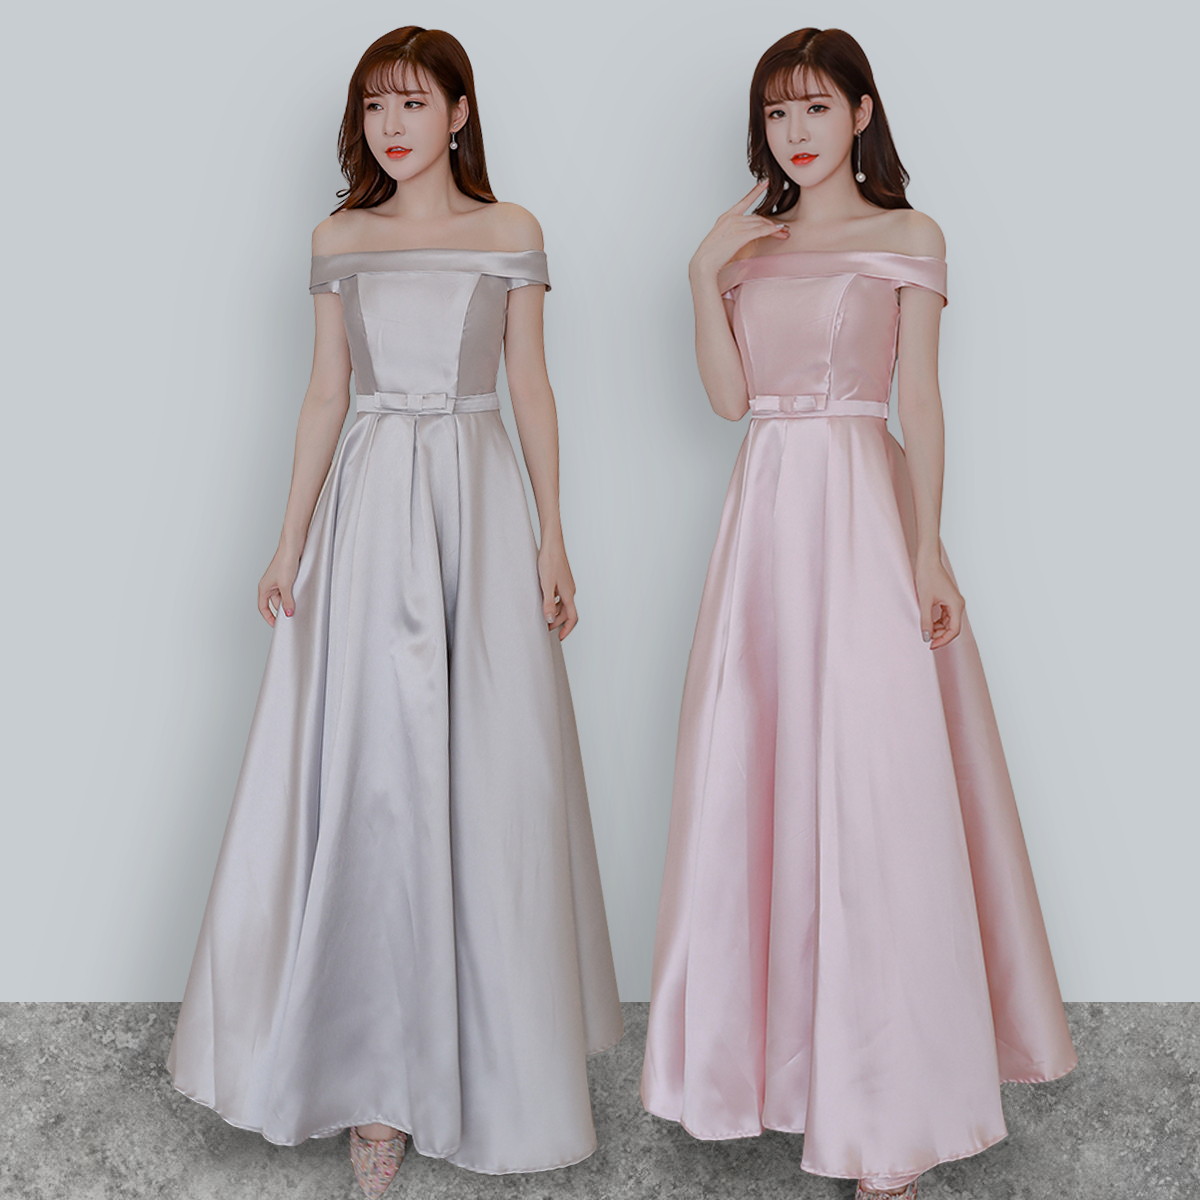 Pink Bridesmaids Dresses Elegant Wedding Guest Dress Ladies Sister Party Boat Neck Floor-length Simple Dance Sexy Prom Vestido